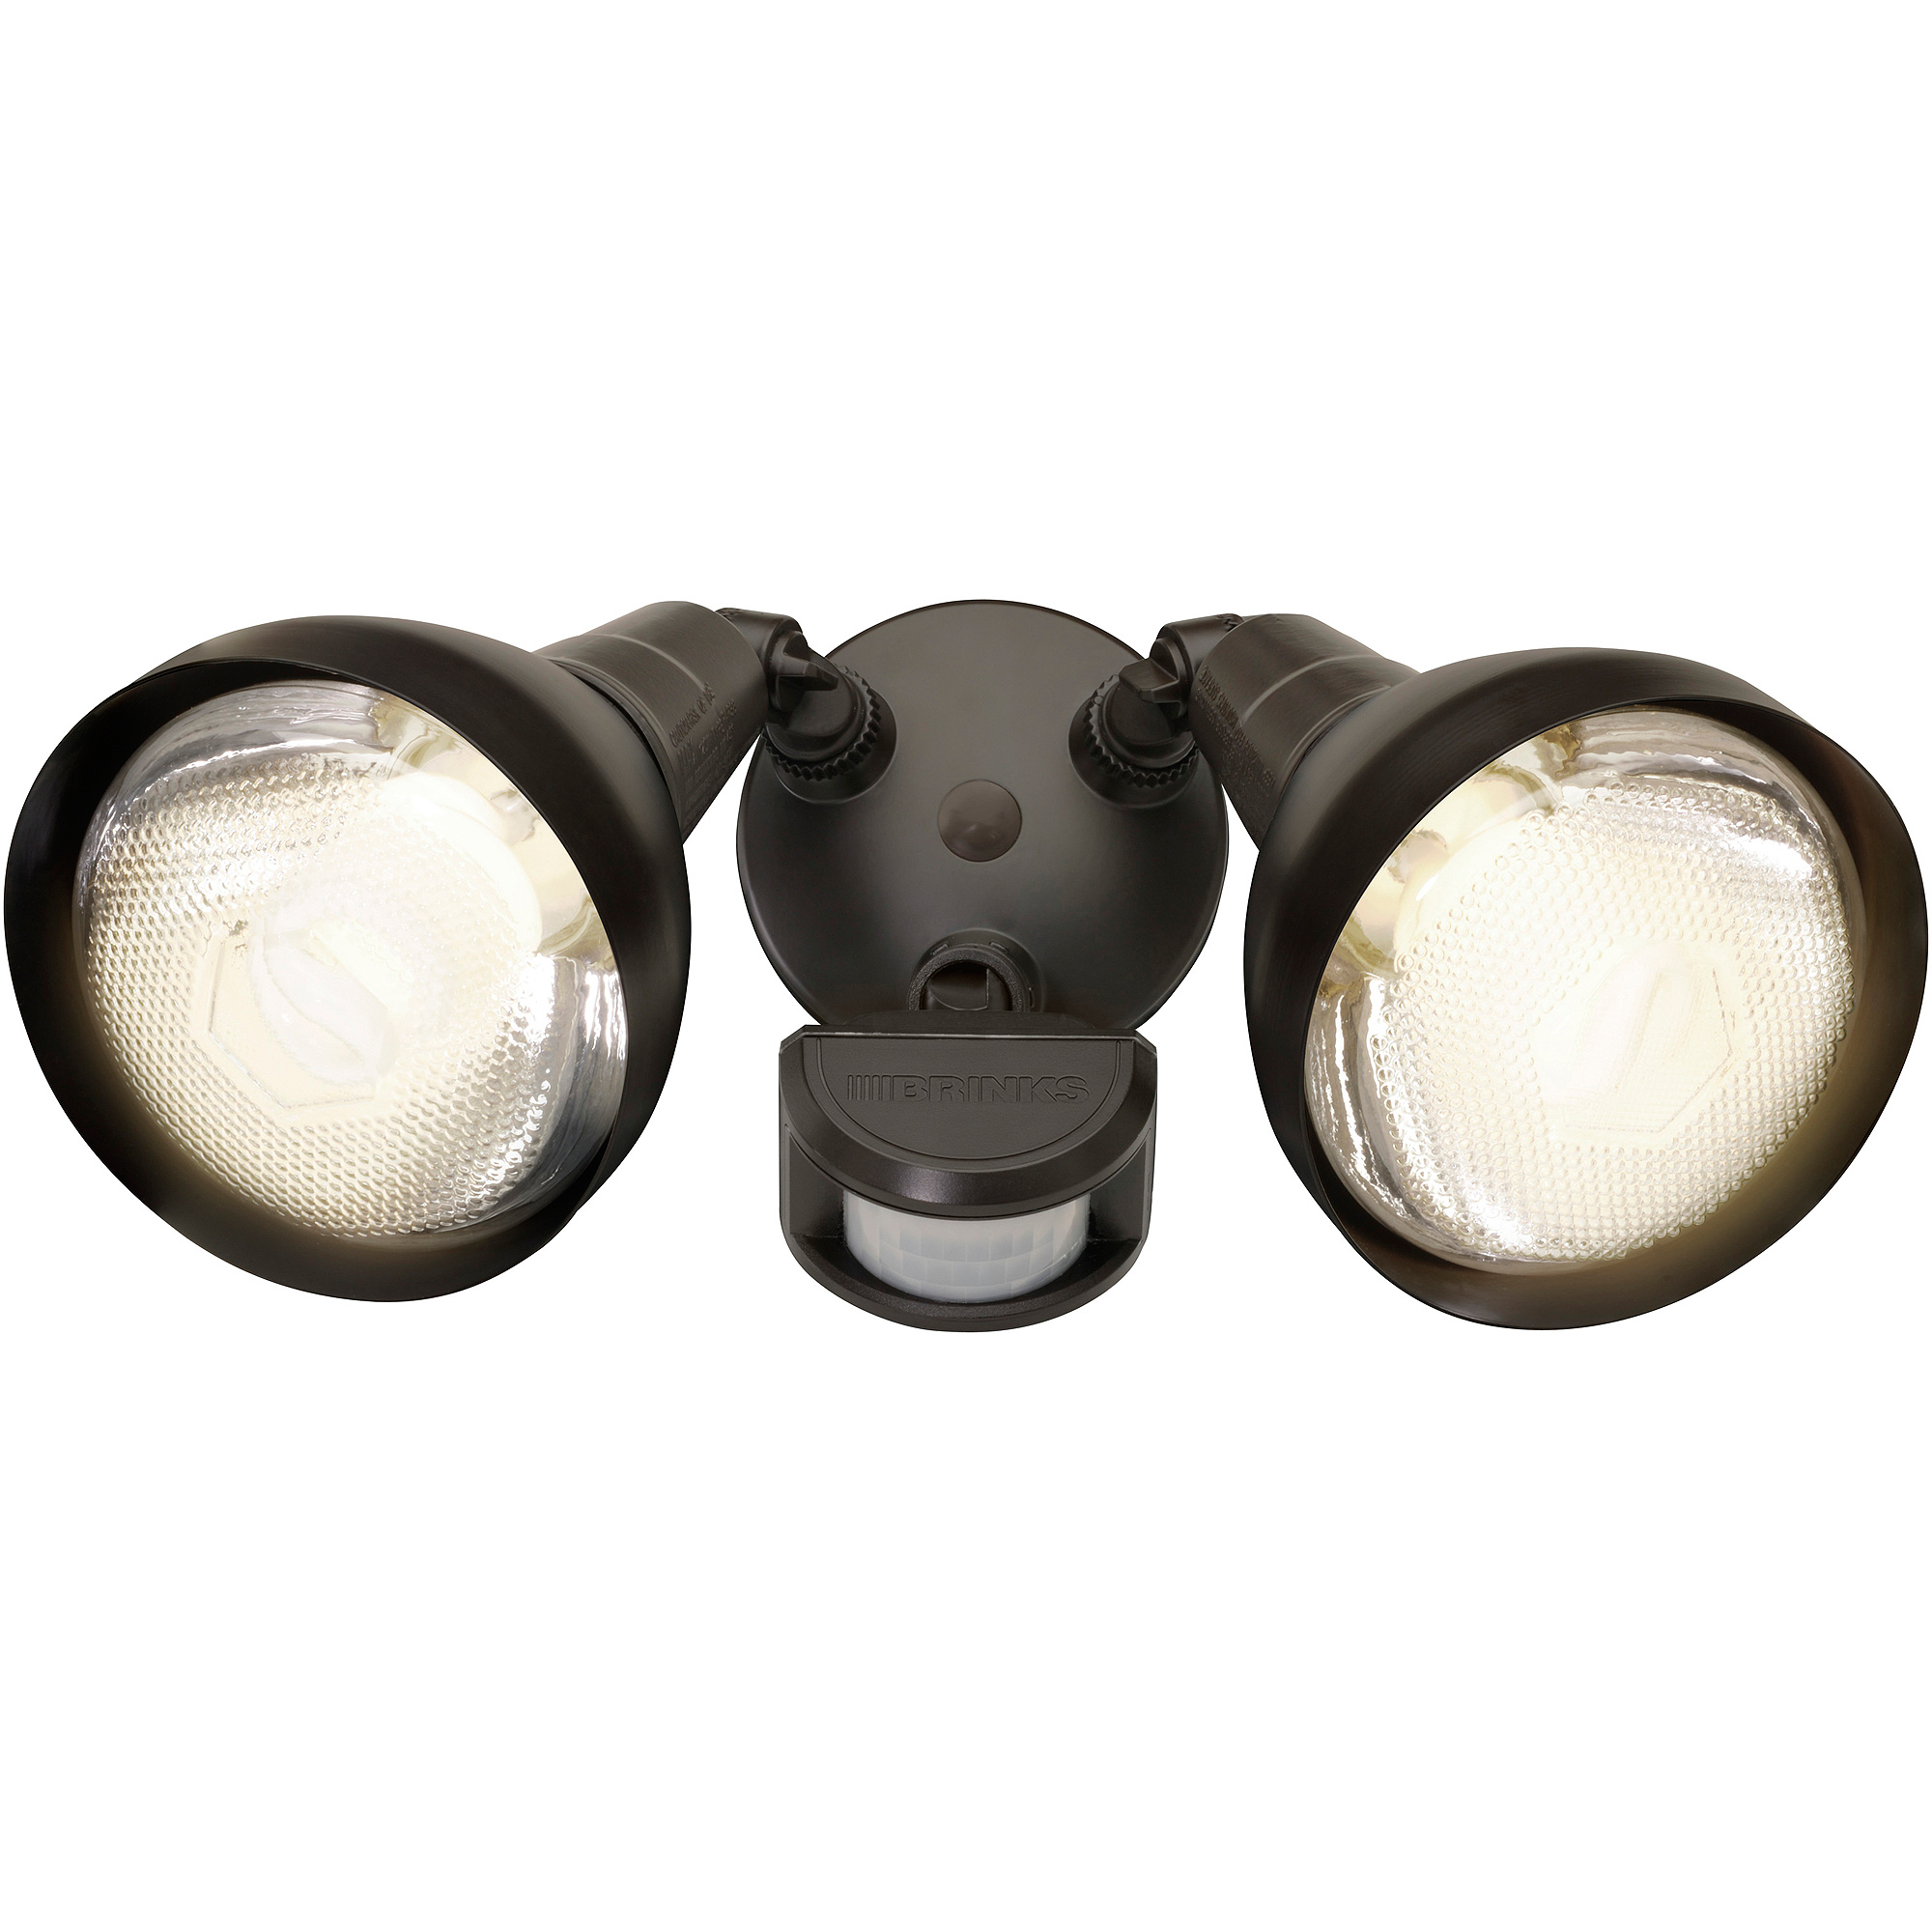 Brink's 180-Degree 2-Head with Head Motion Activated Security Light